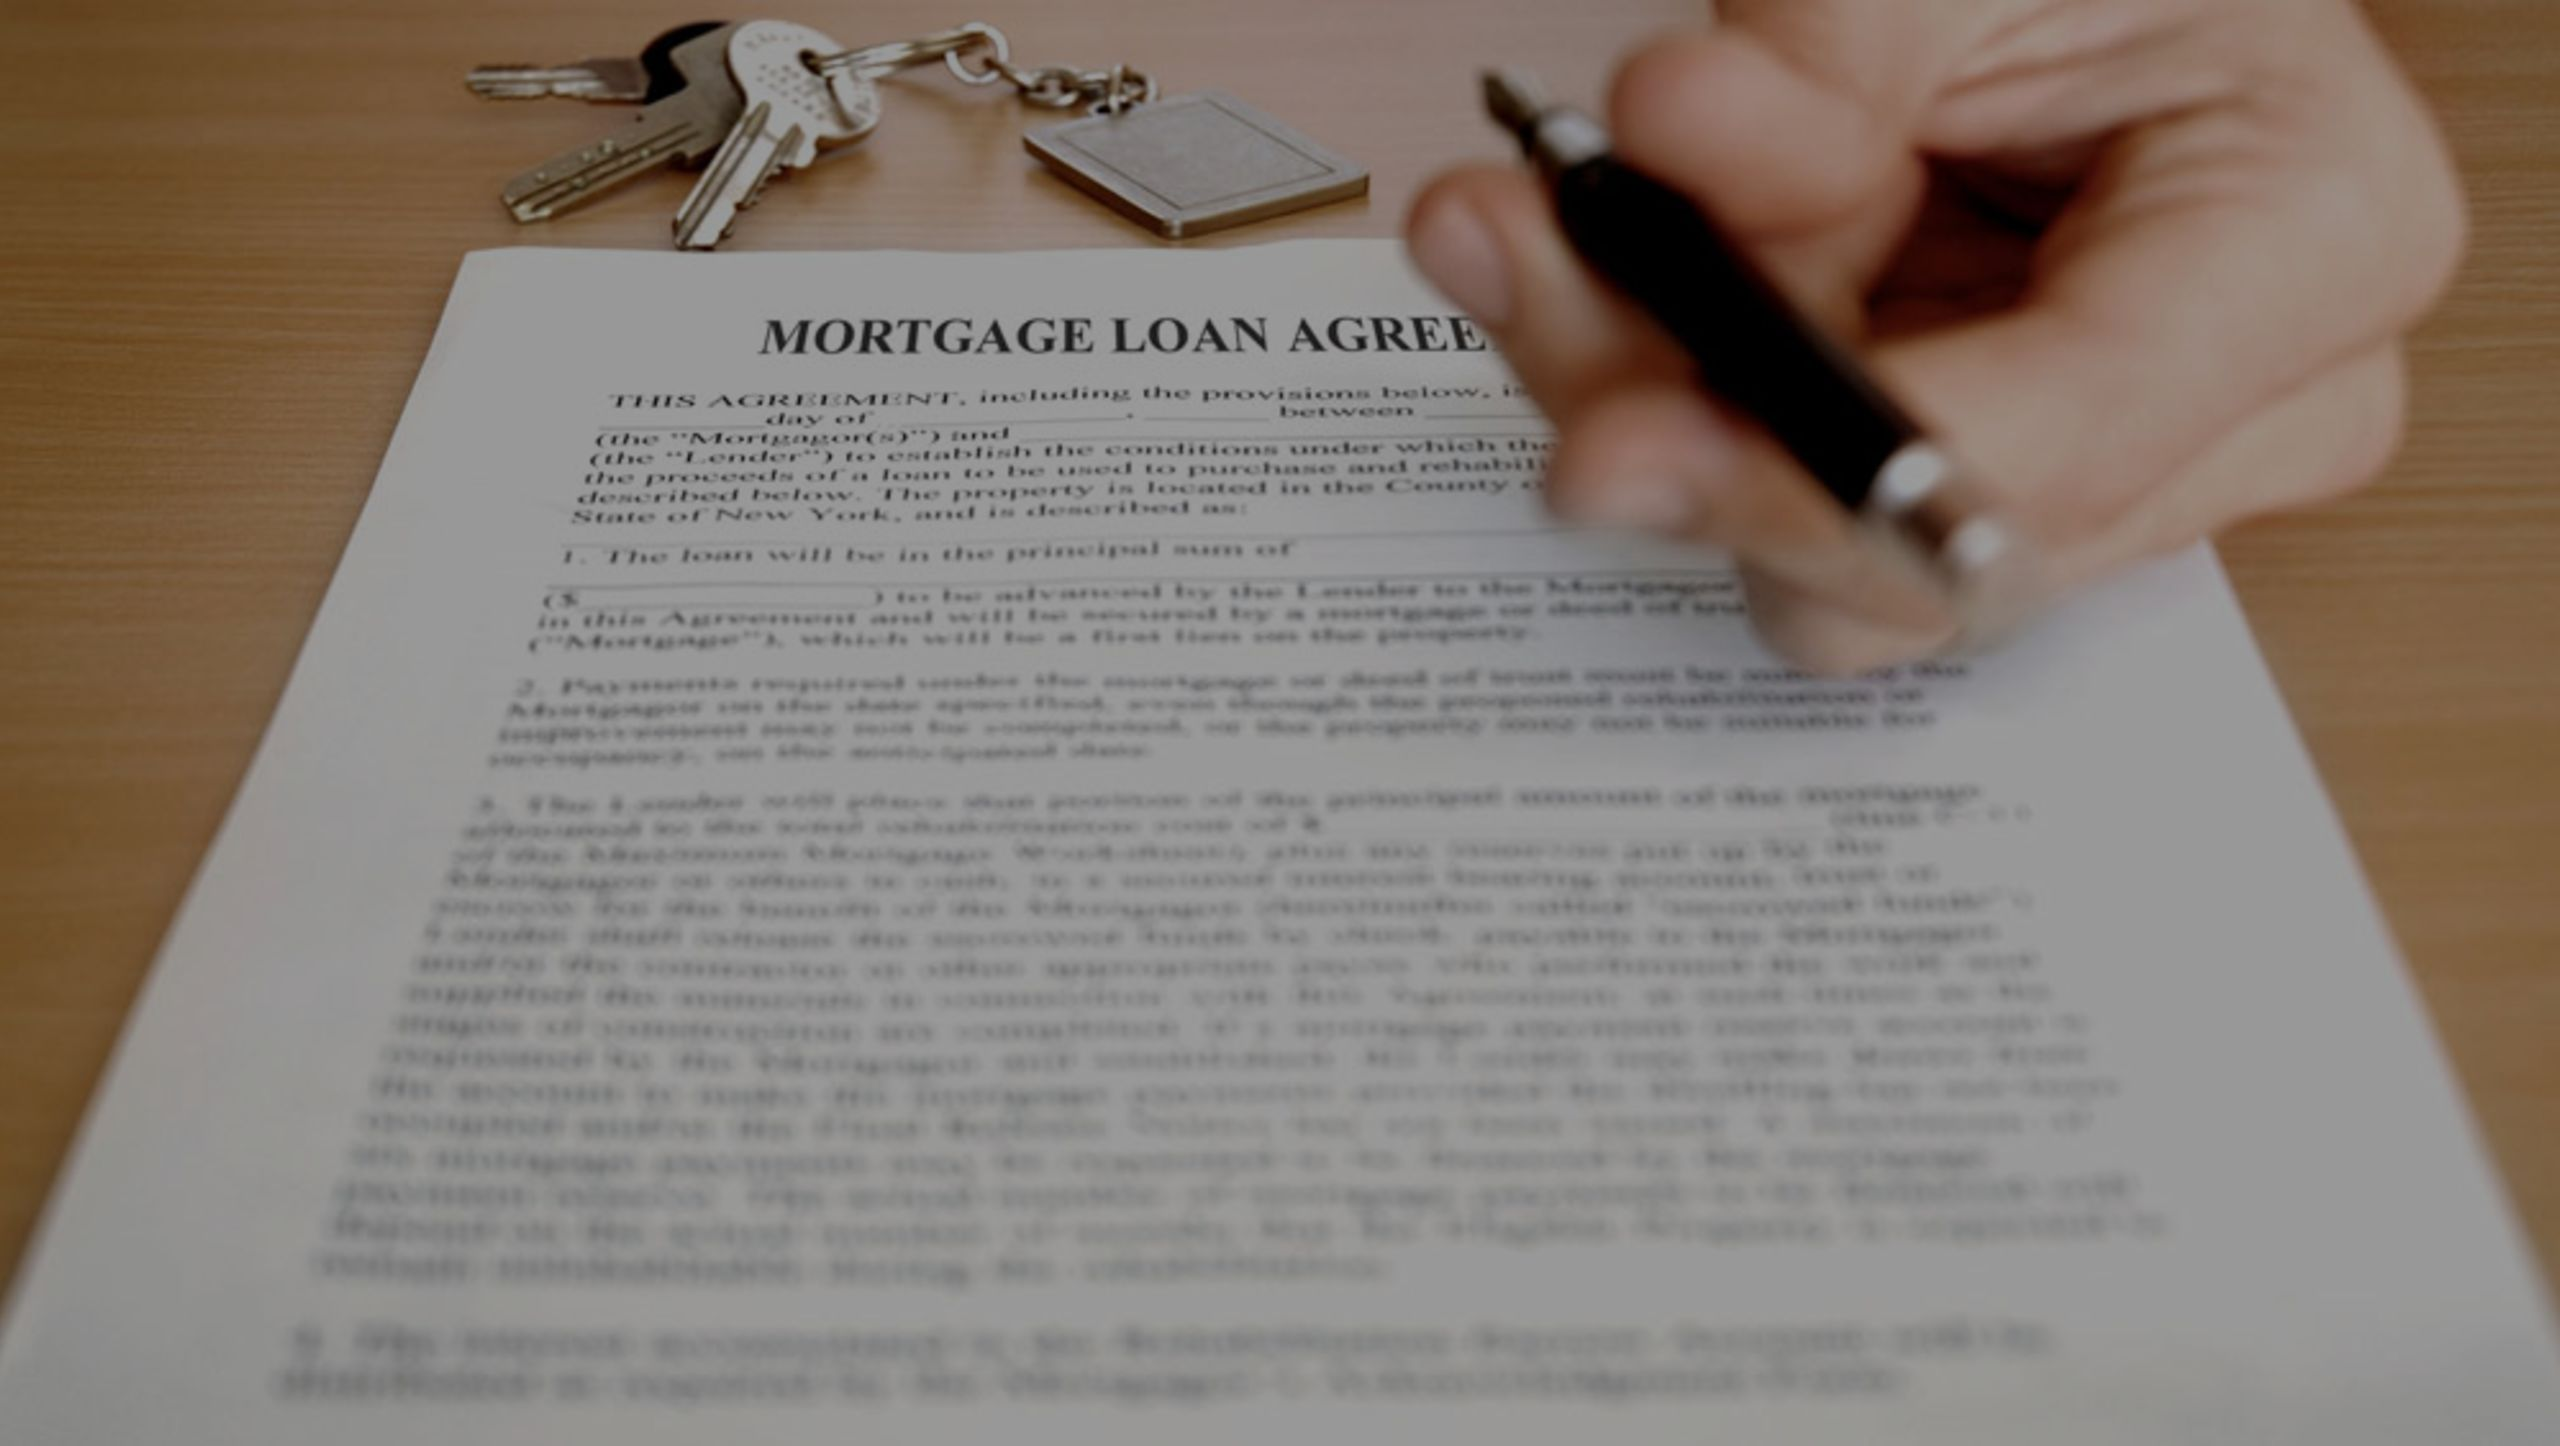 Initiating the mortgage process